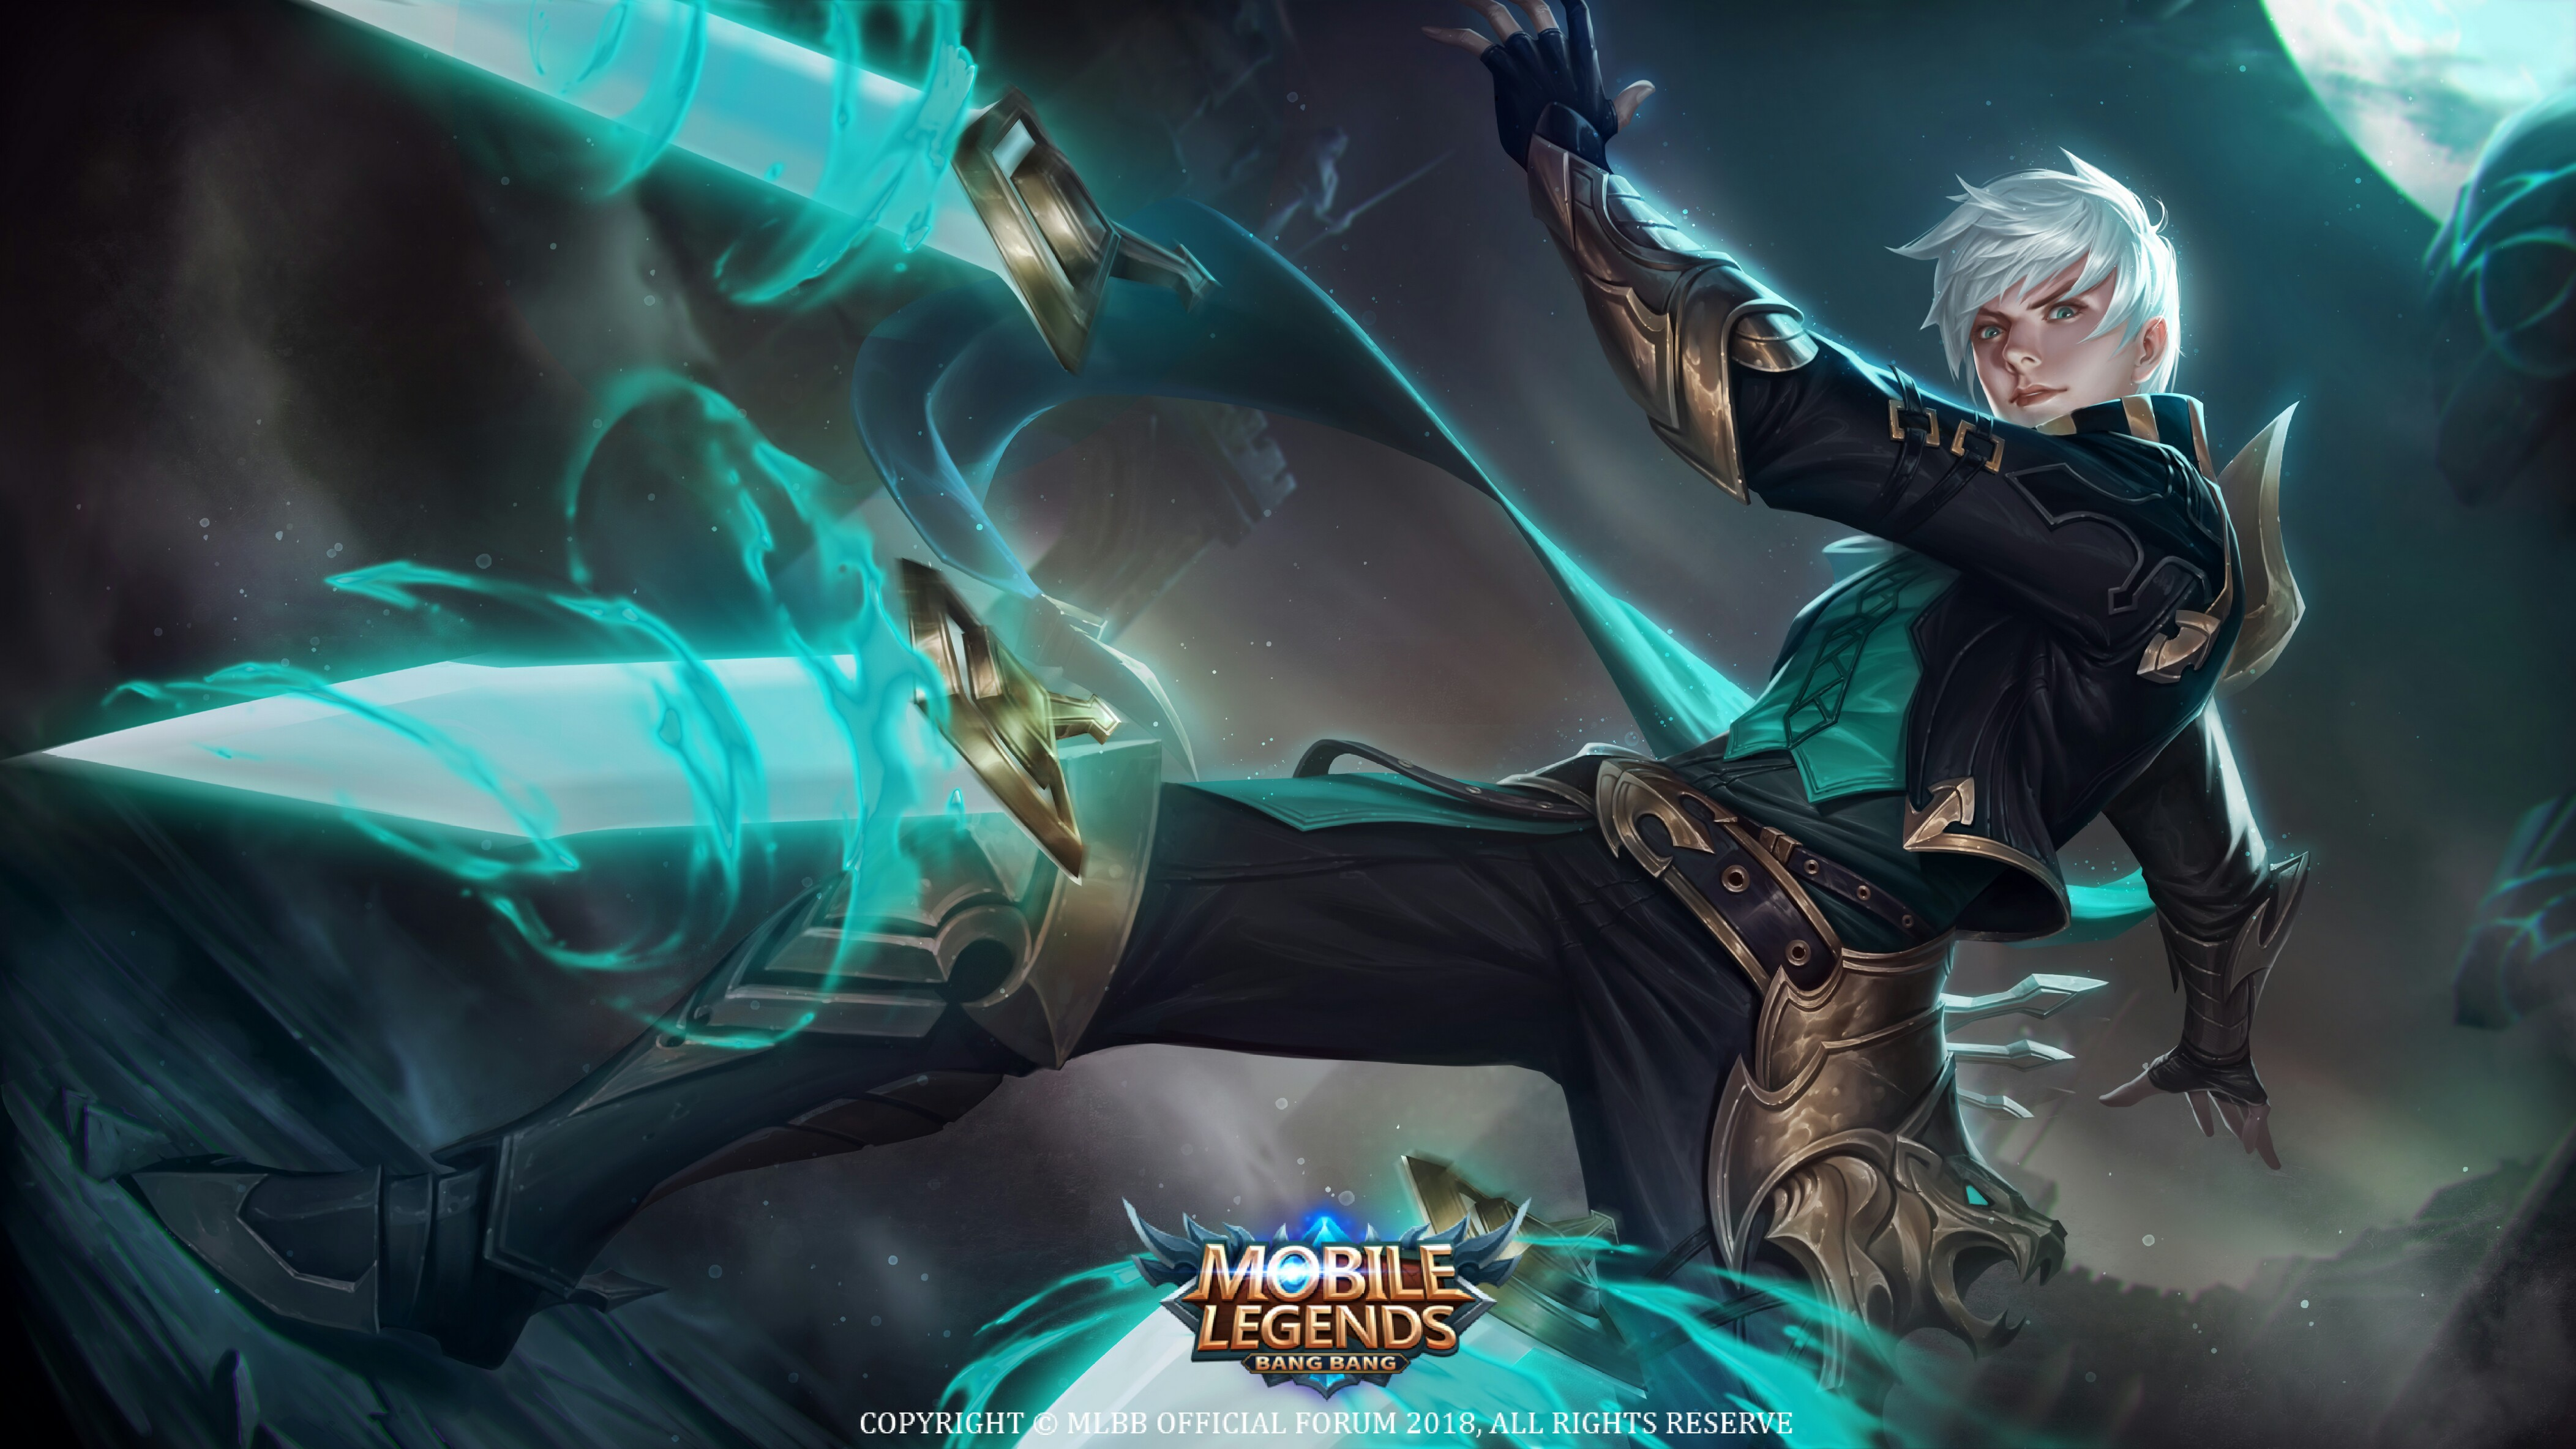 Desktop Wallpapers   Gusion Mobile Legends Hd Wallpapers 4208x2367